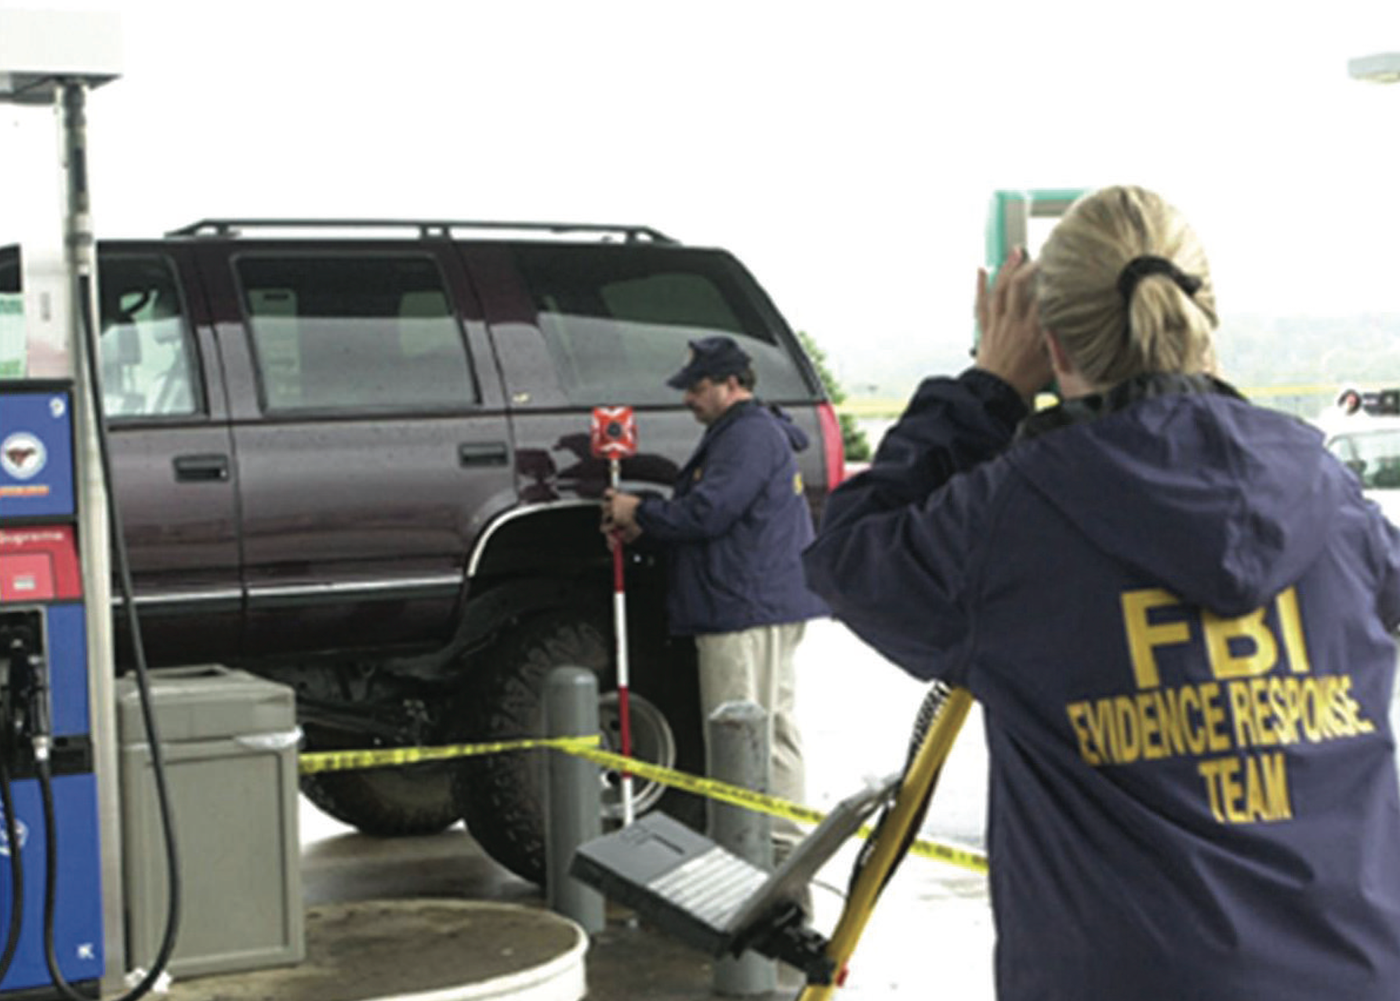 FBI evidence experts surveying a crime scene during the D.C. Beltway sniper case in October 2002. John Allen Muhammed and Lee Boyd Malvo used a hole in the trunk of their Chevy Caprice to shoot 10 victims.